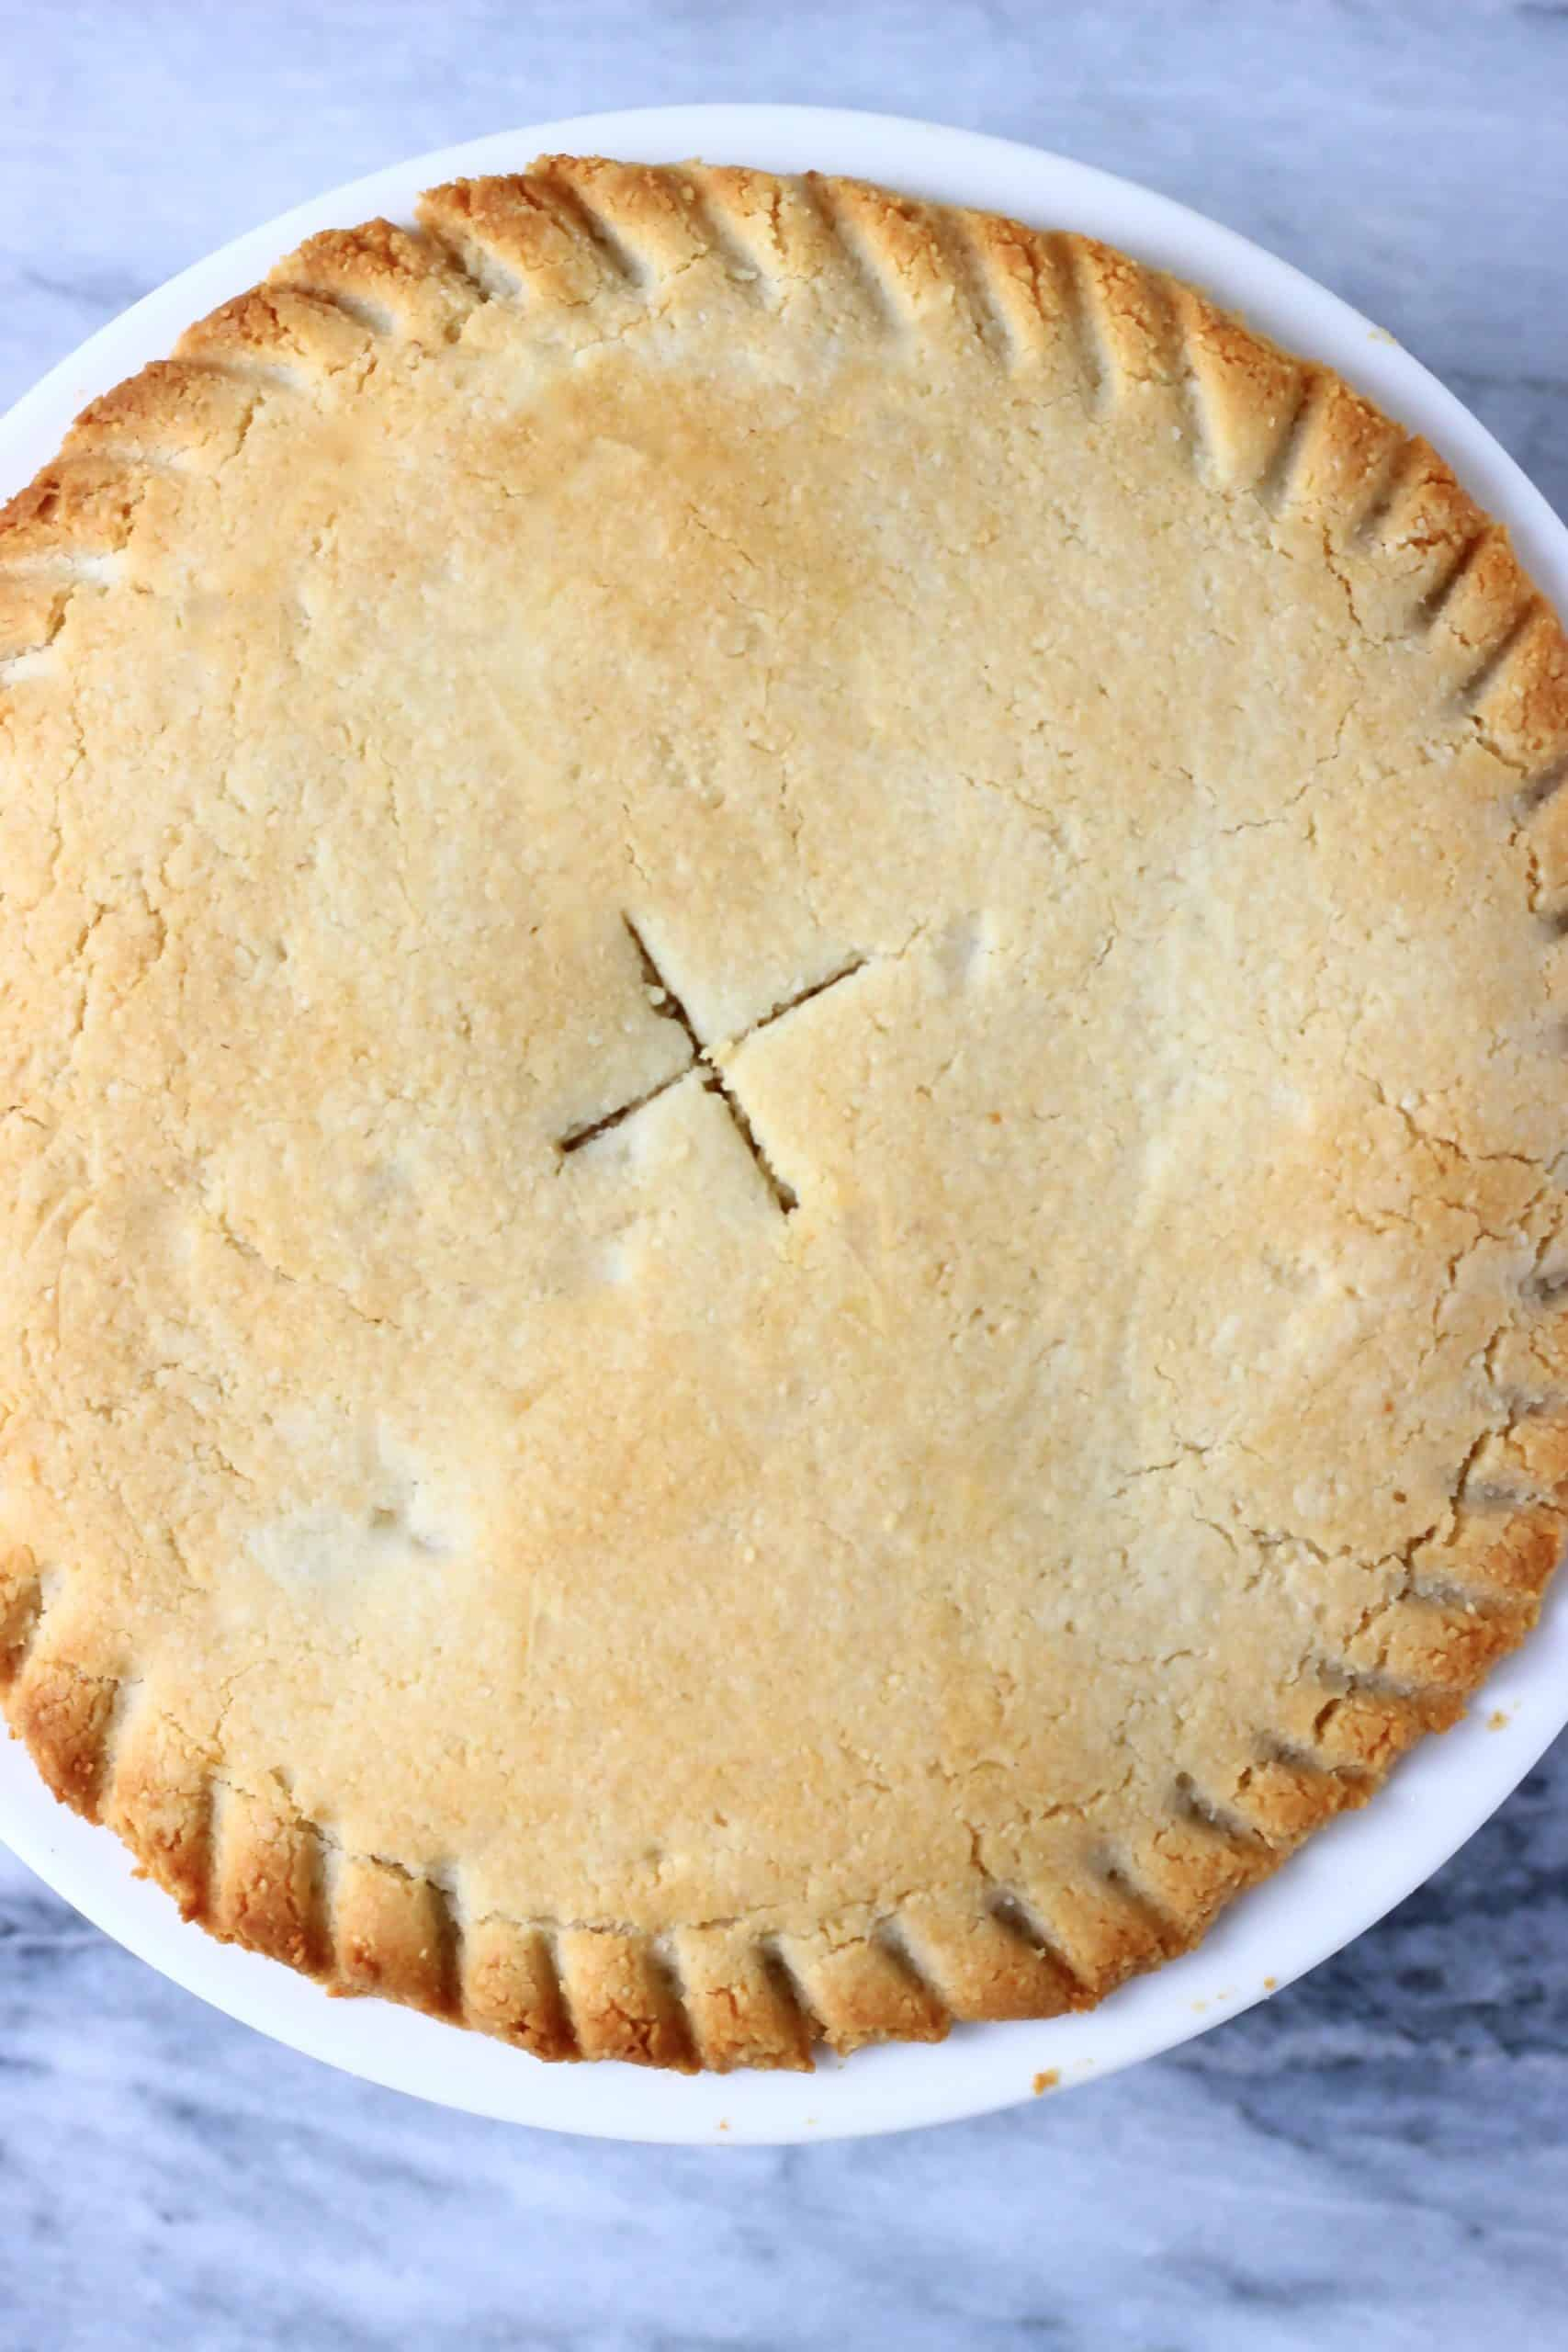 A gluten-free vegan apple pie in a pie dish